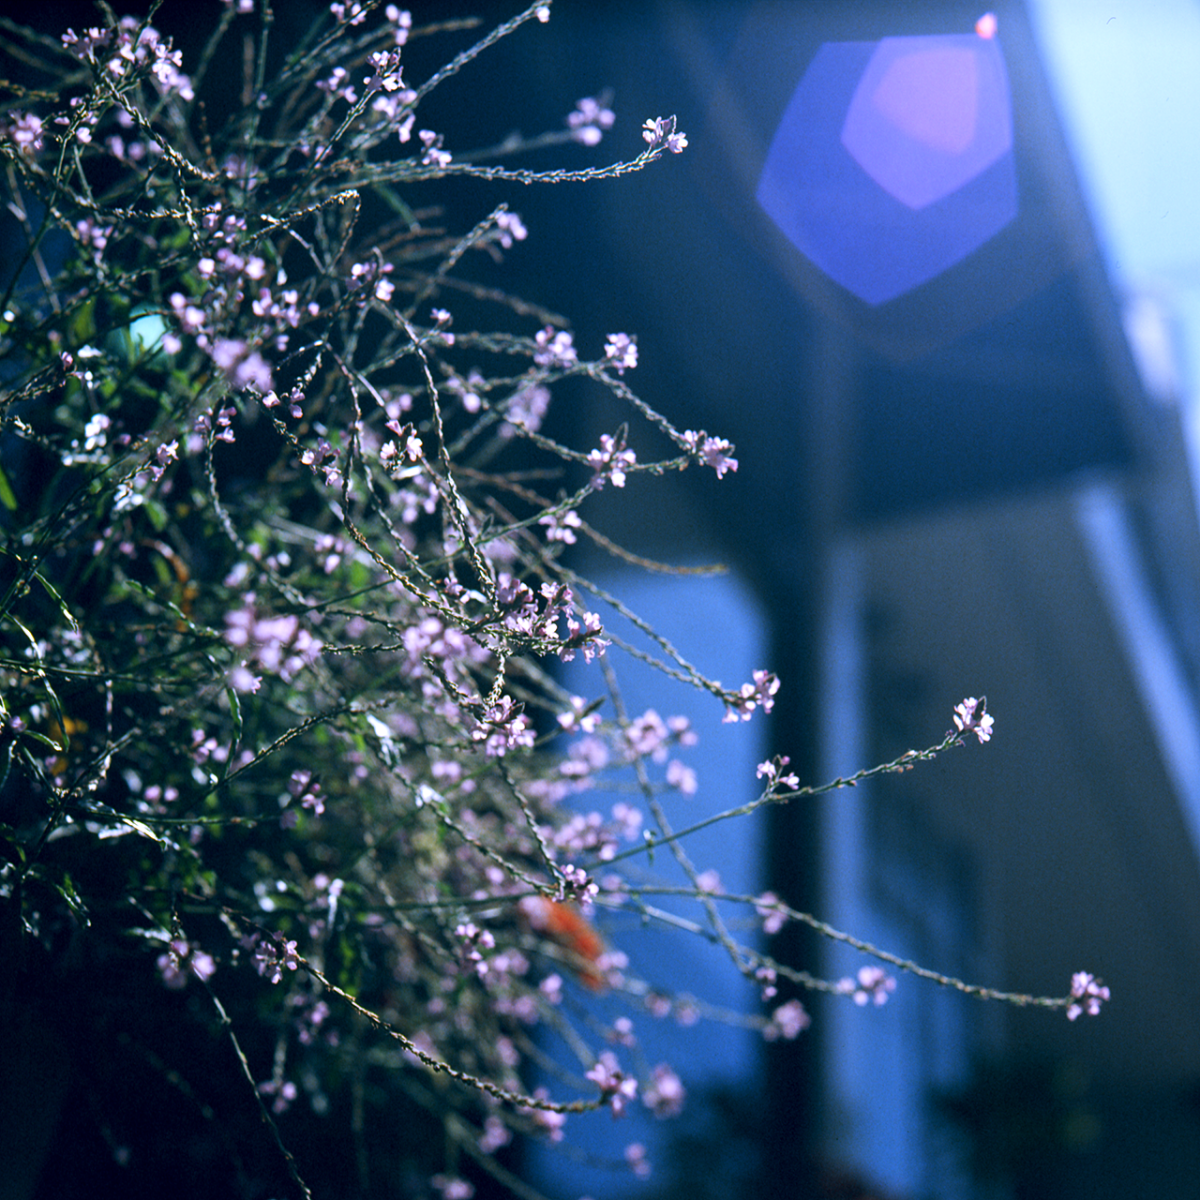 Kodak Ektachrome 64/EPR 現像結果